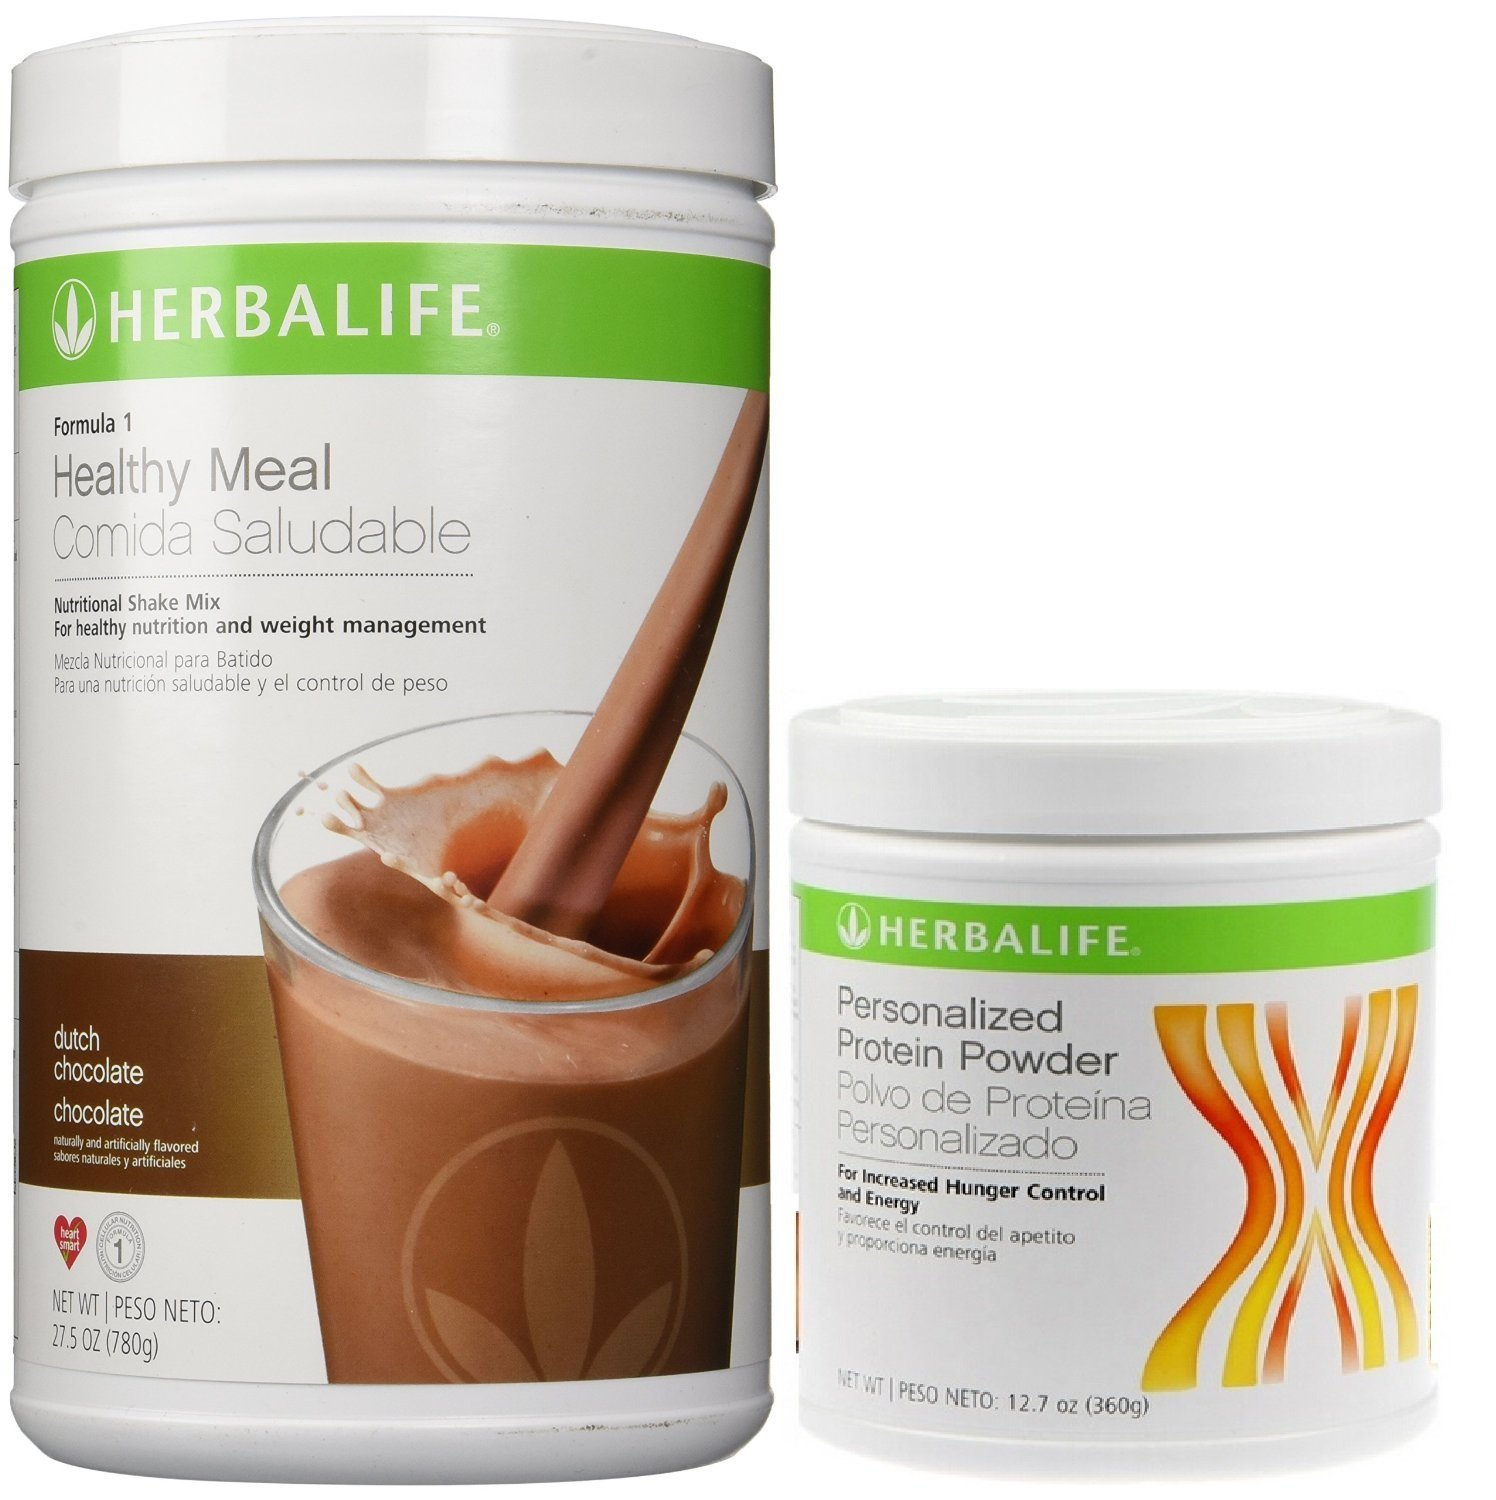 Herbalife Formula 1 Shake Mix-Dutch Chocolate (750g) + Formula 2 Personalized Protein Powder (PPP)-360g Unflavoured.